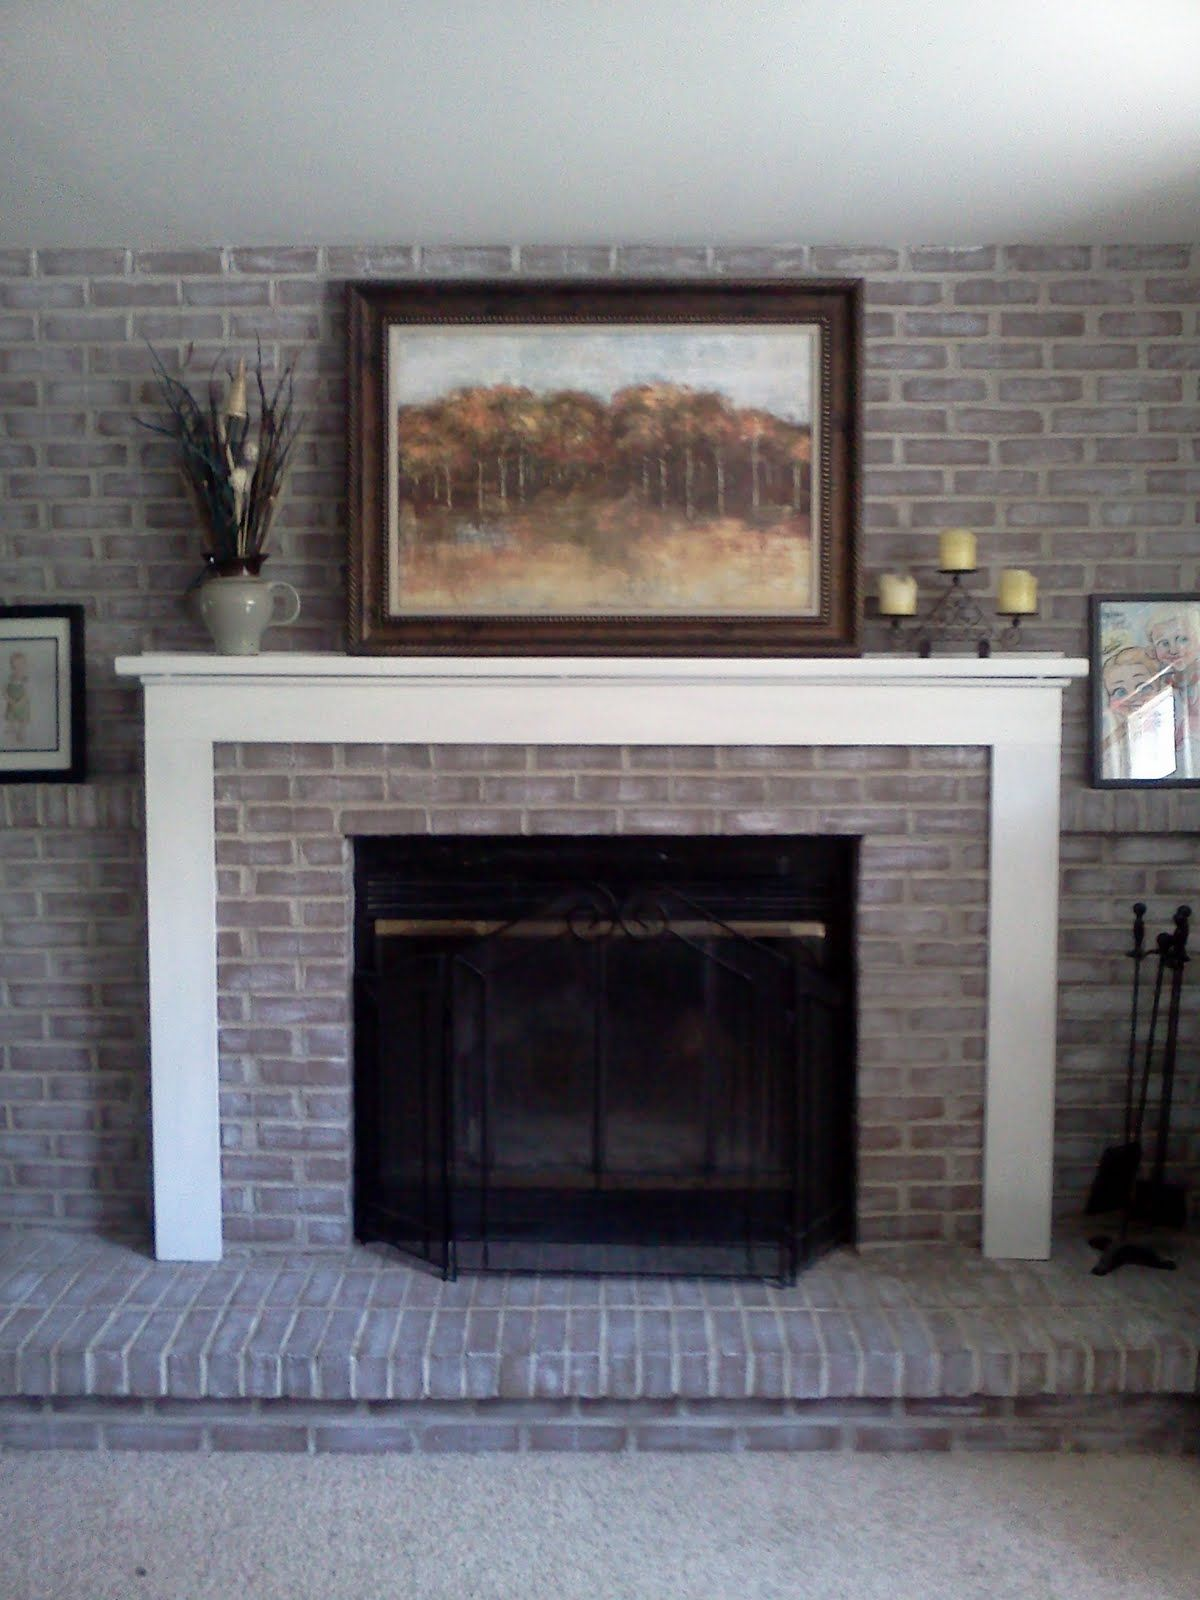 i finally addressed my ugly fireplace. after a long time of